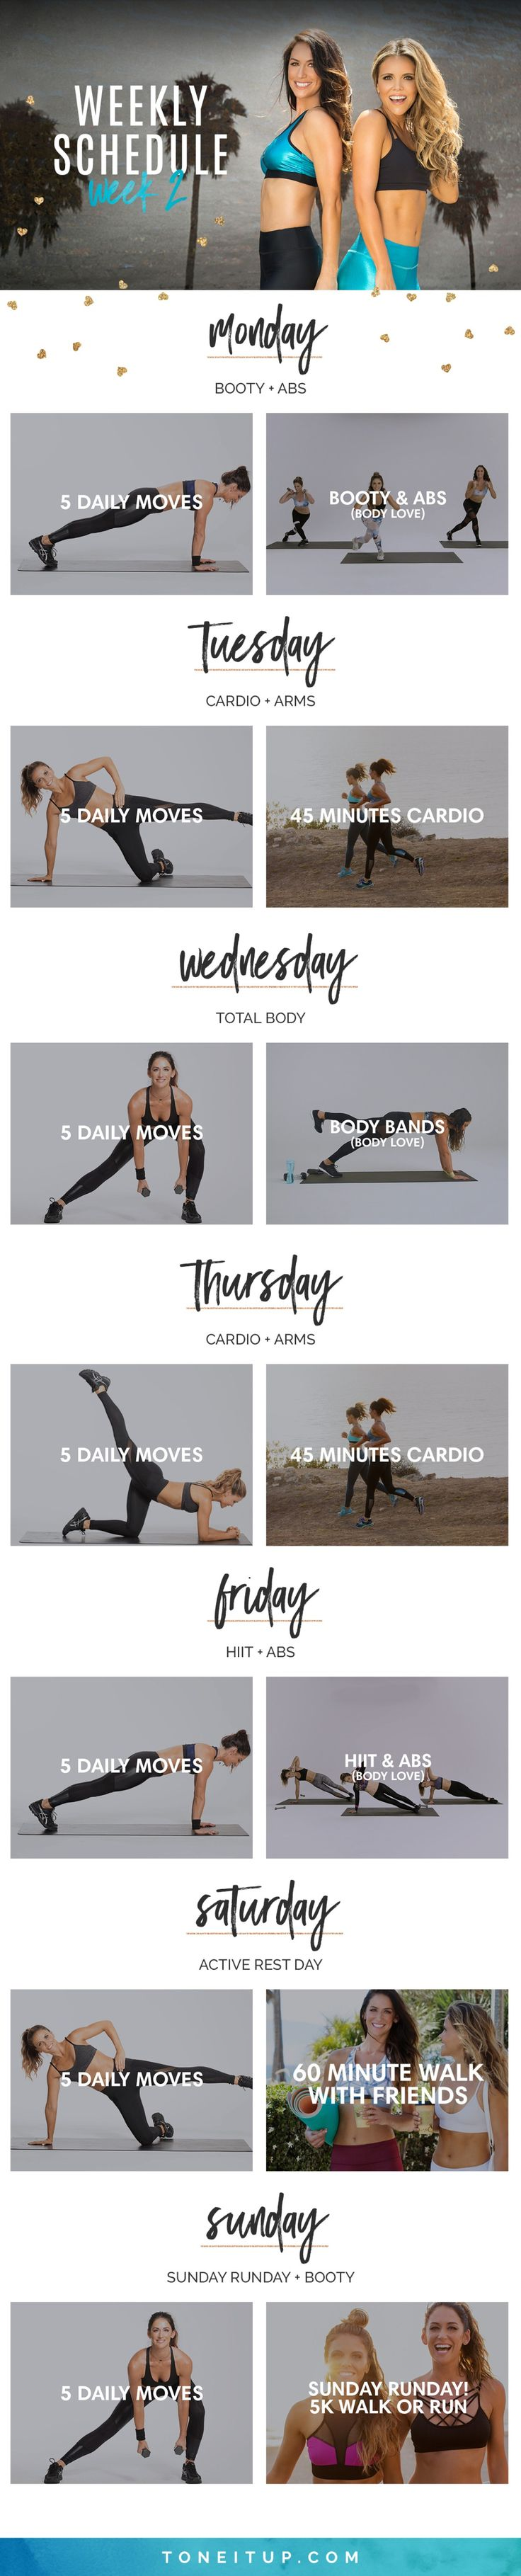 Tone It Up Challenge Week 2 Weekly Schedule